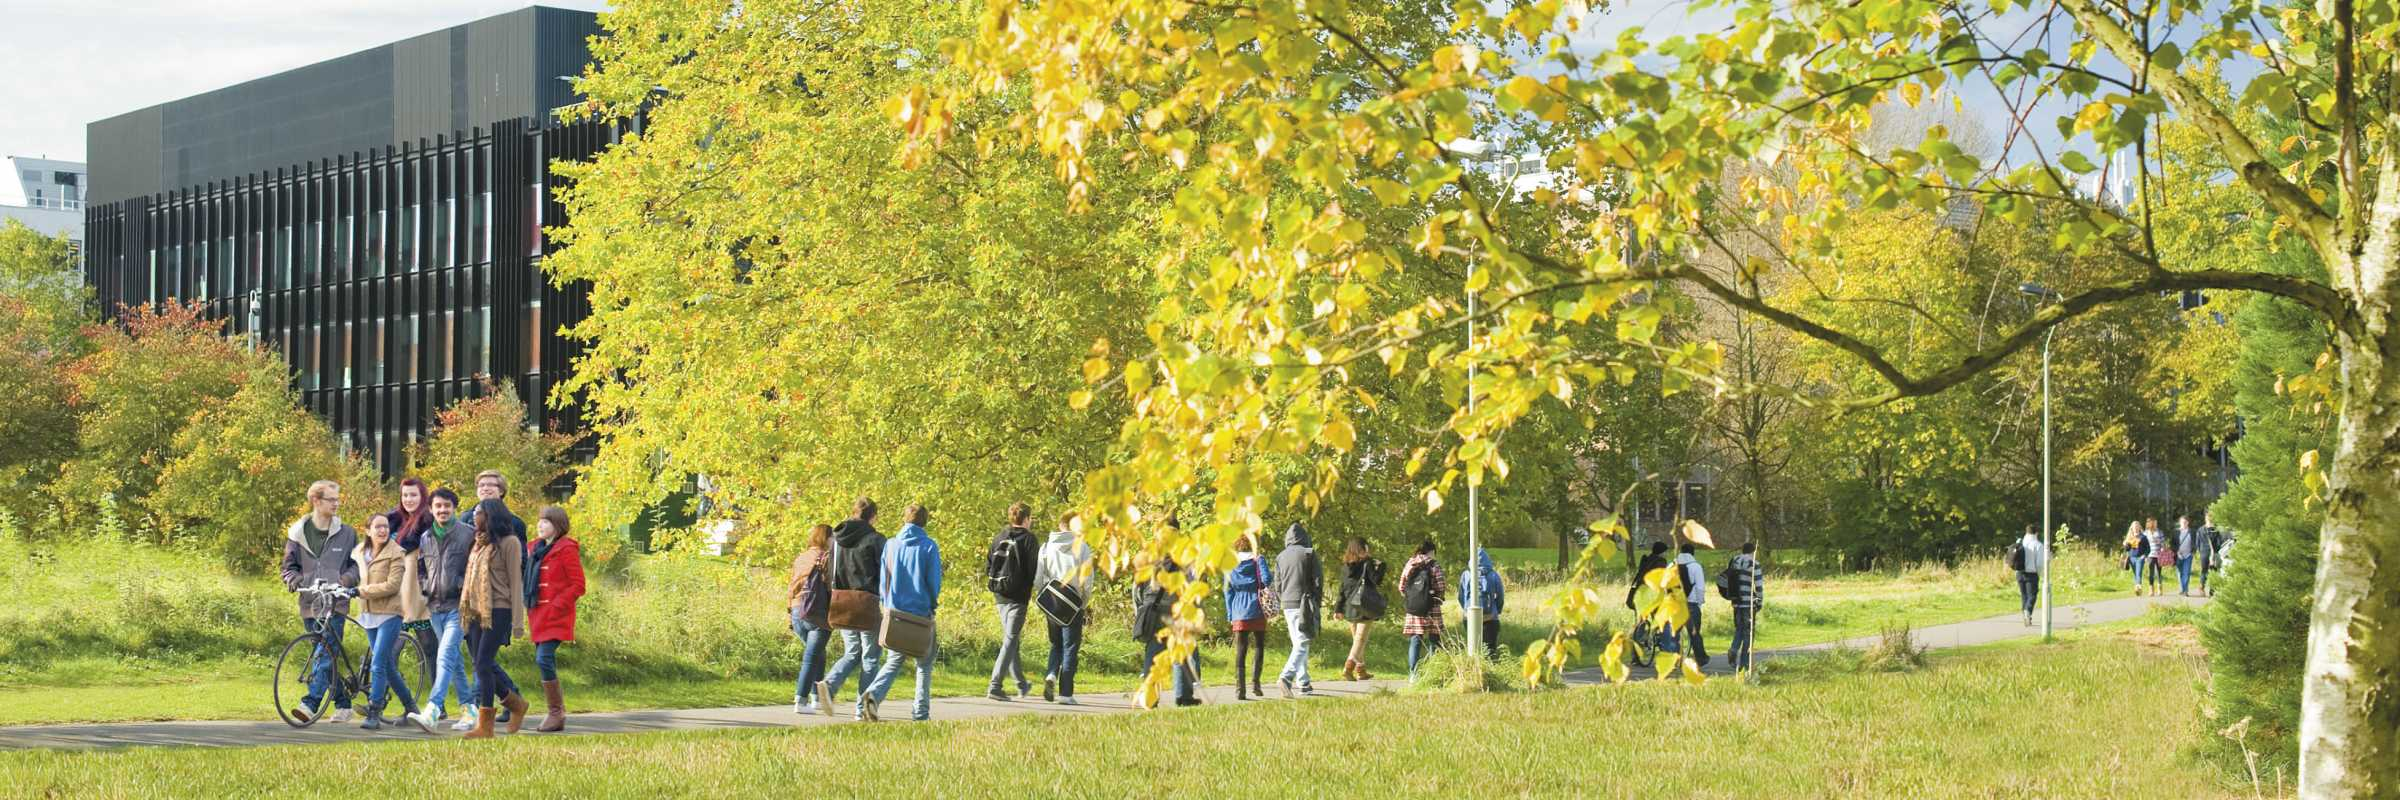 Students on University of Reading campus